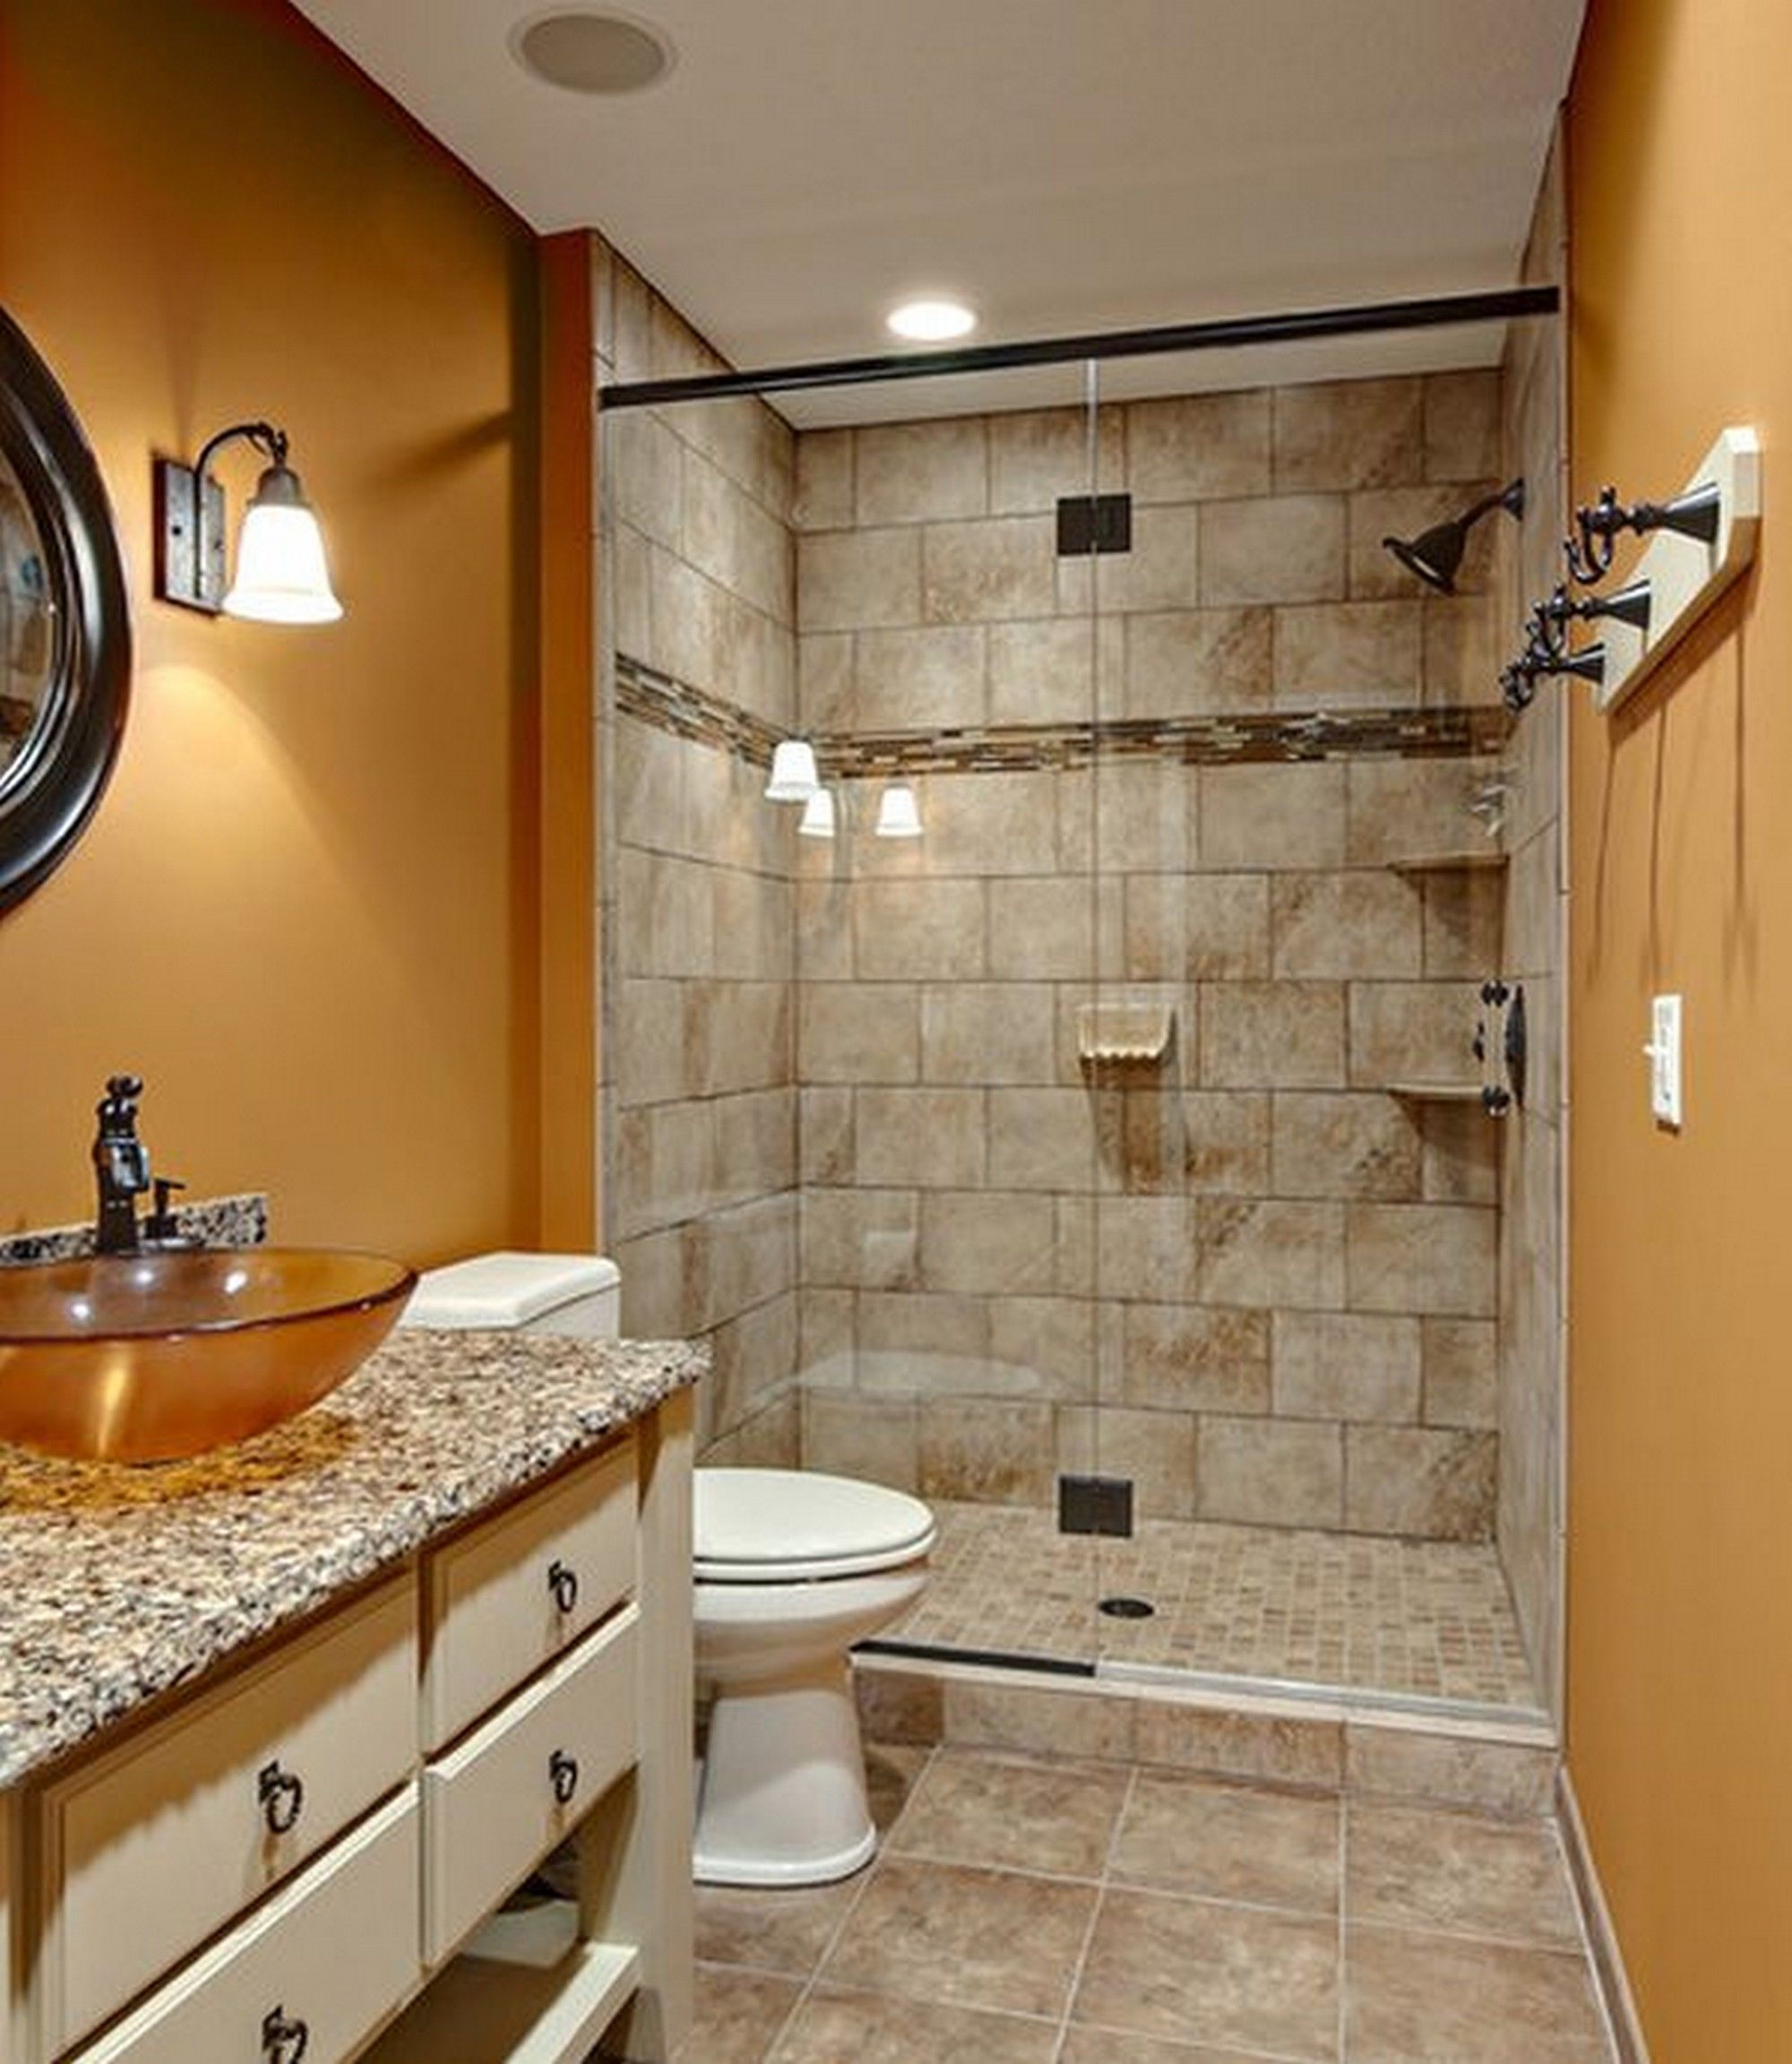 Modern Bathroom Design Ideas With Walk In Shower  Bathroom Fascinating Small Bathroom Walk In Shower Designs Design Decoration